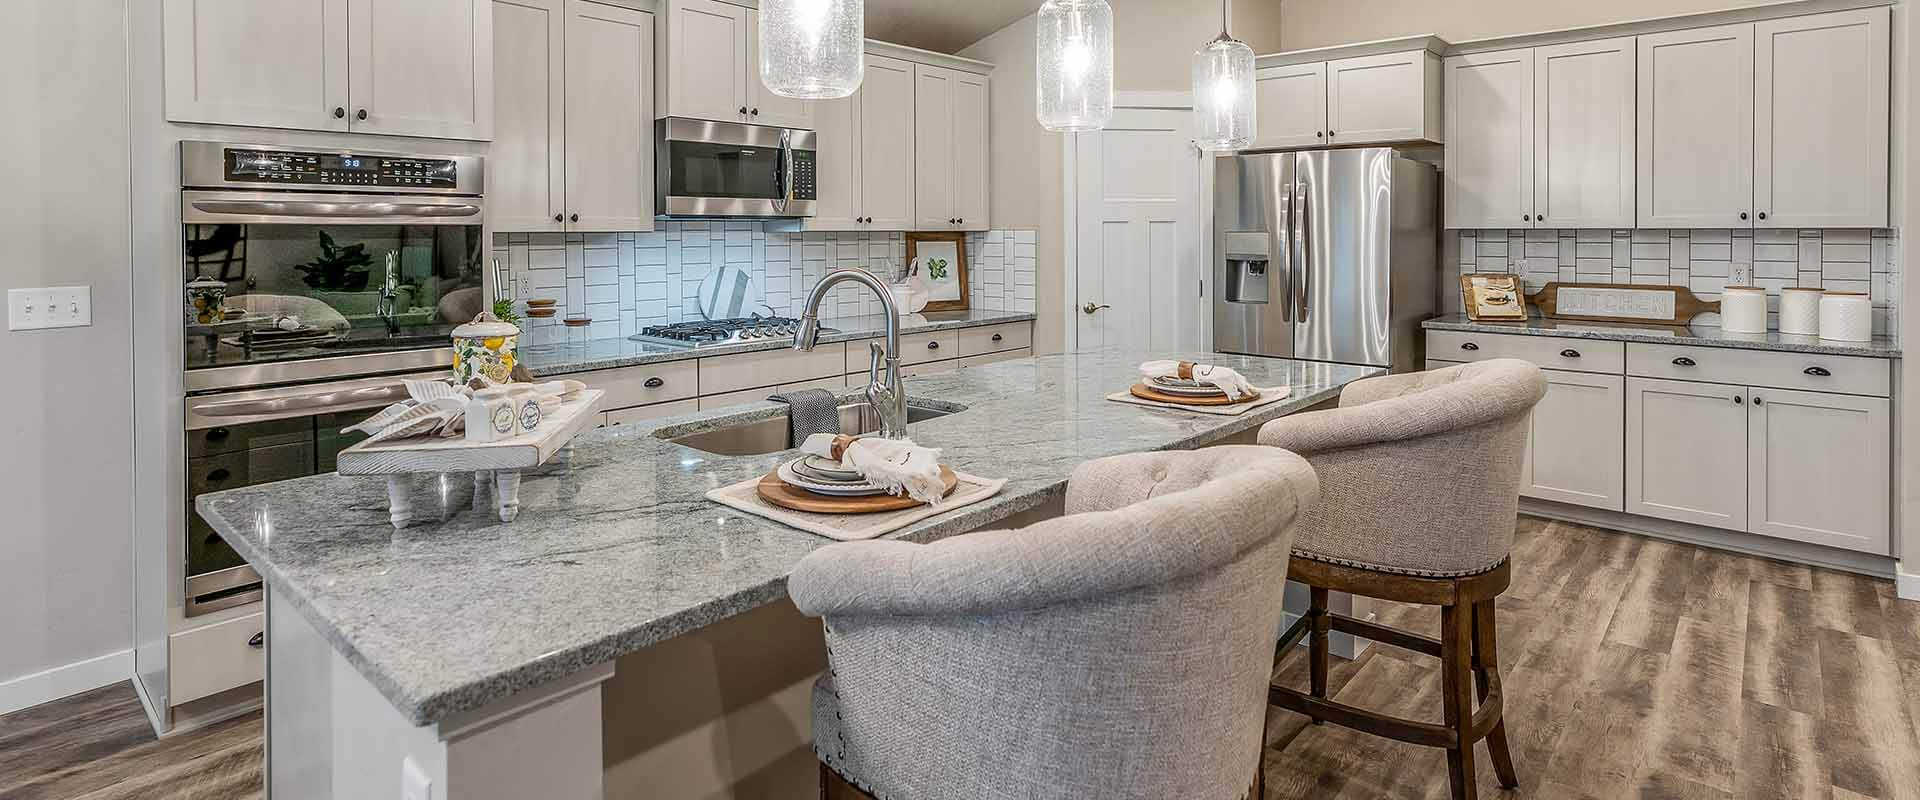 Crestwood_Hubble_Homes_New_Homes_Boise_Kitchen.jpg